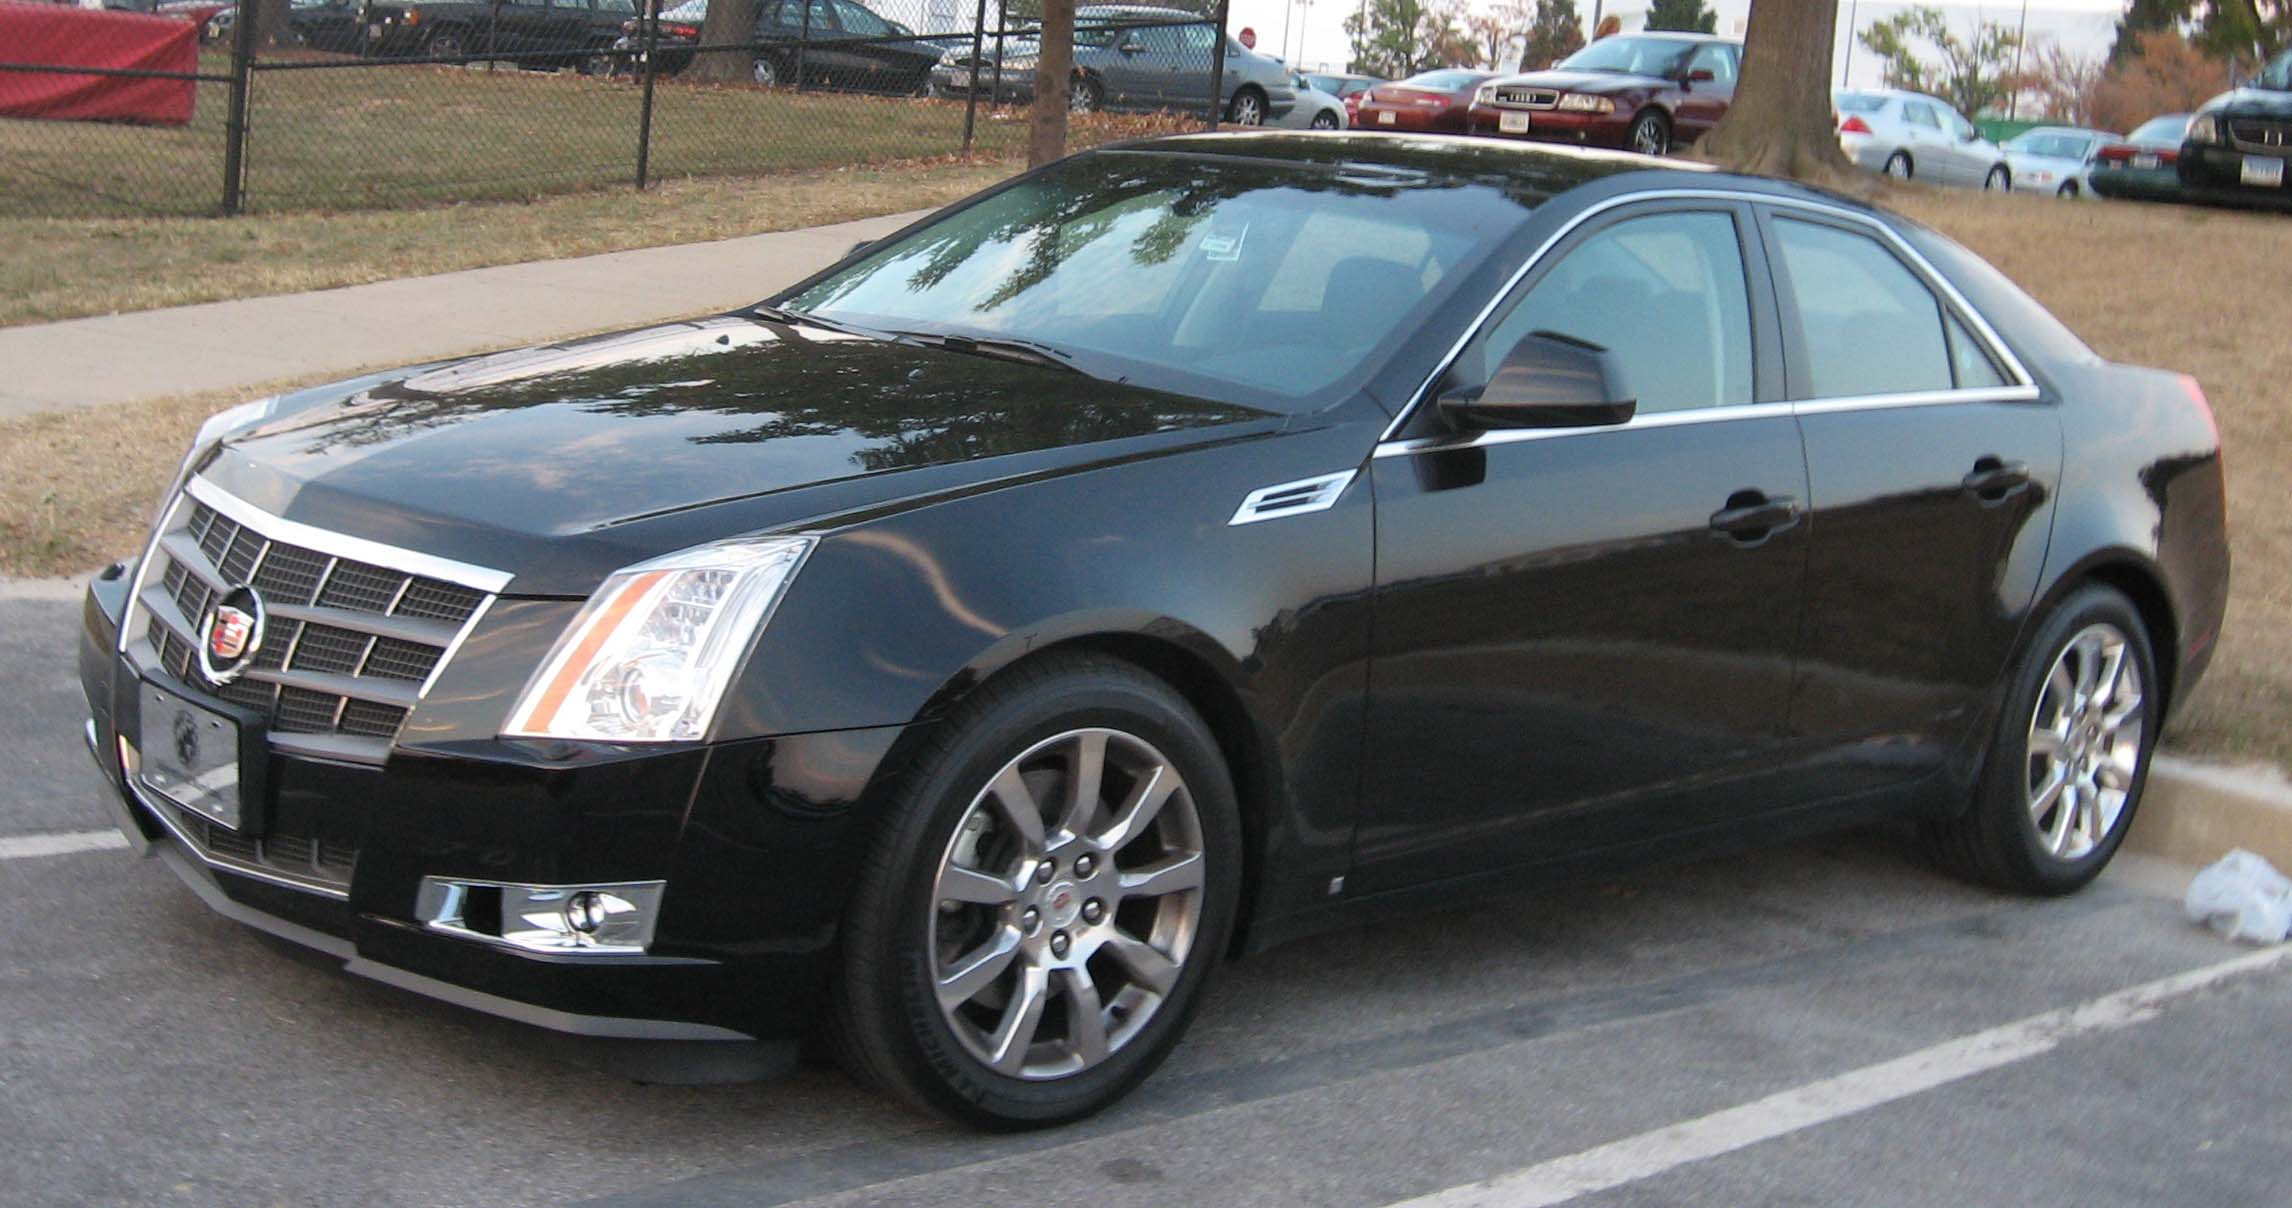 2008 Cadillac CTS4 Beschreibung Wallpapers Background